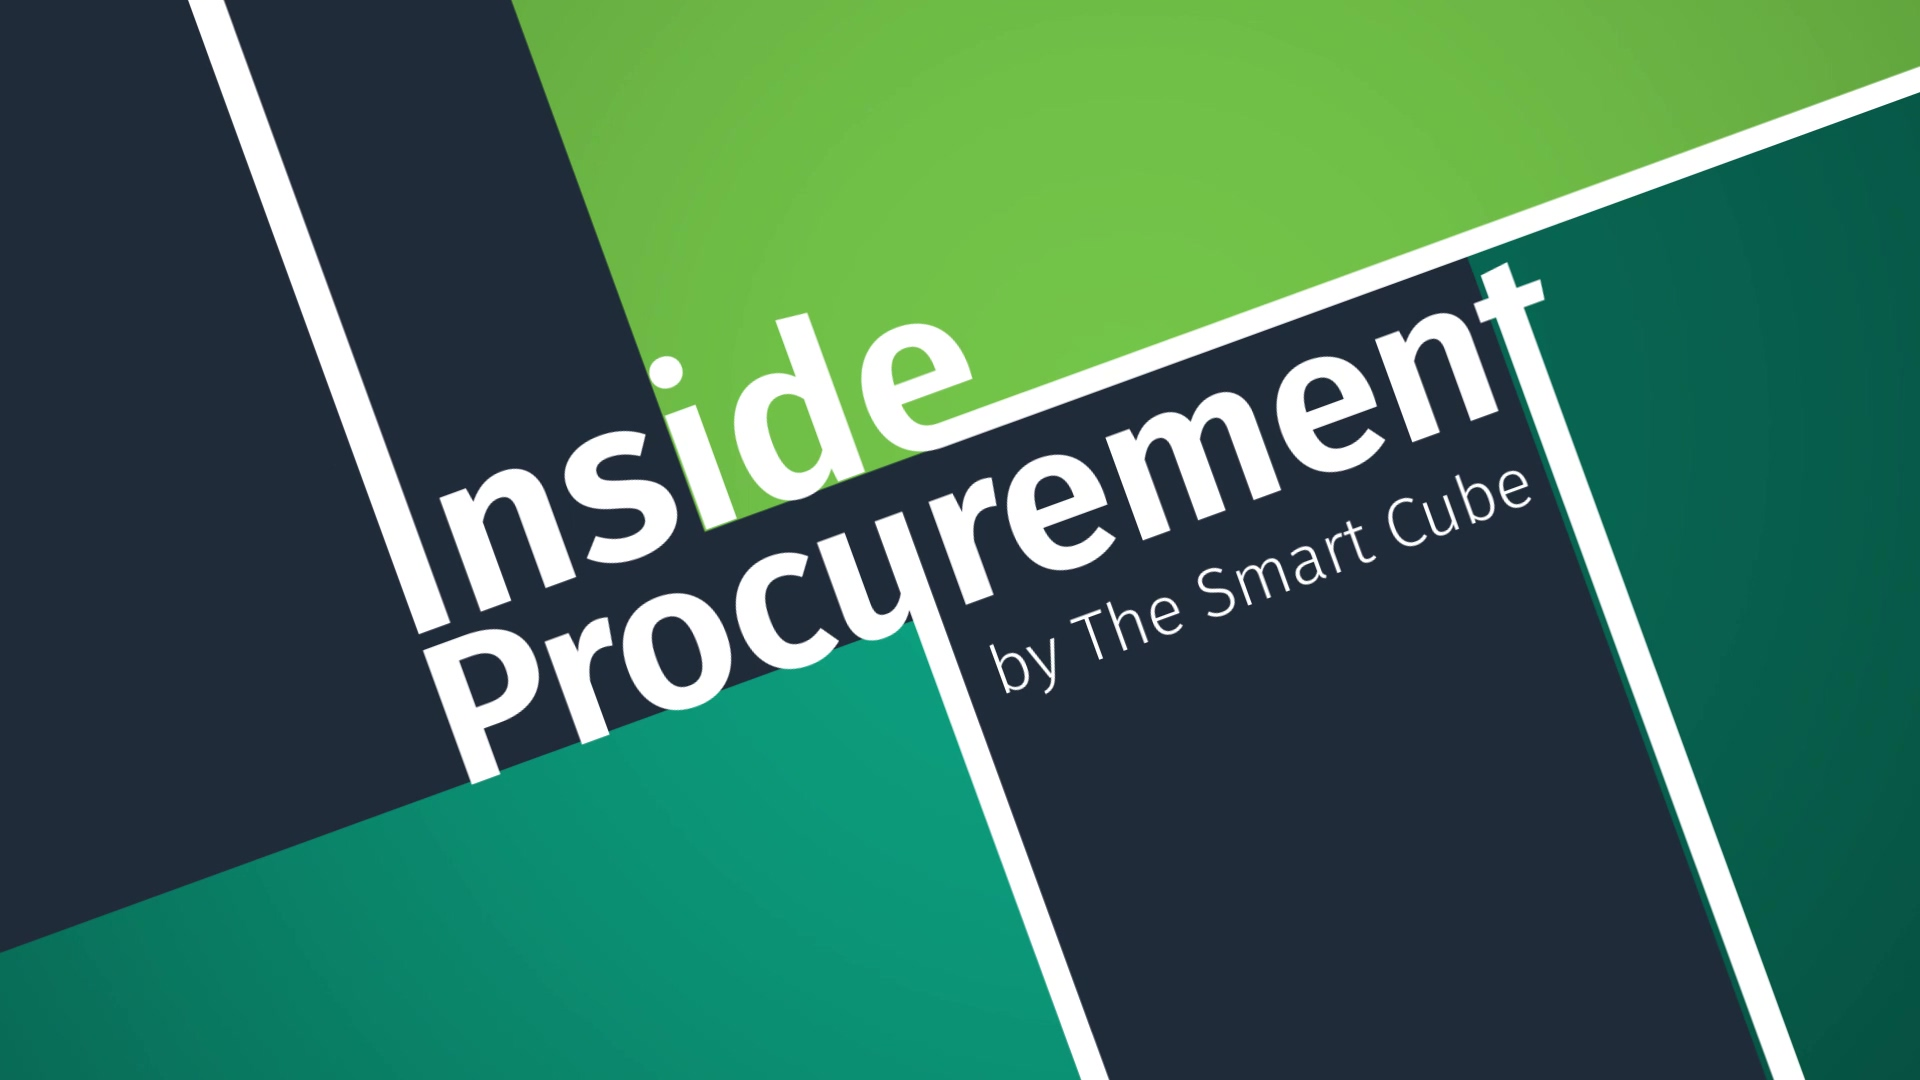 IP_Establishing procurements credibility_Part2